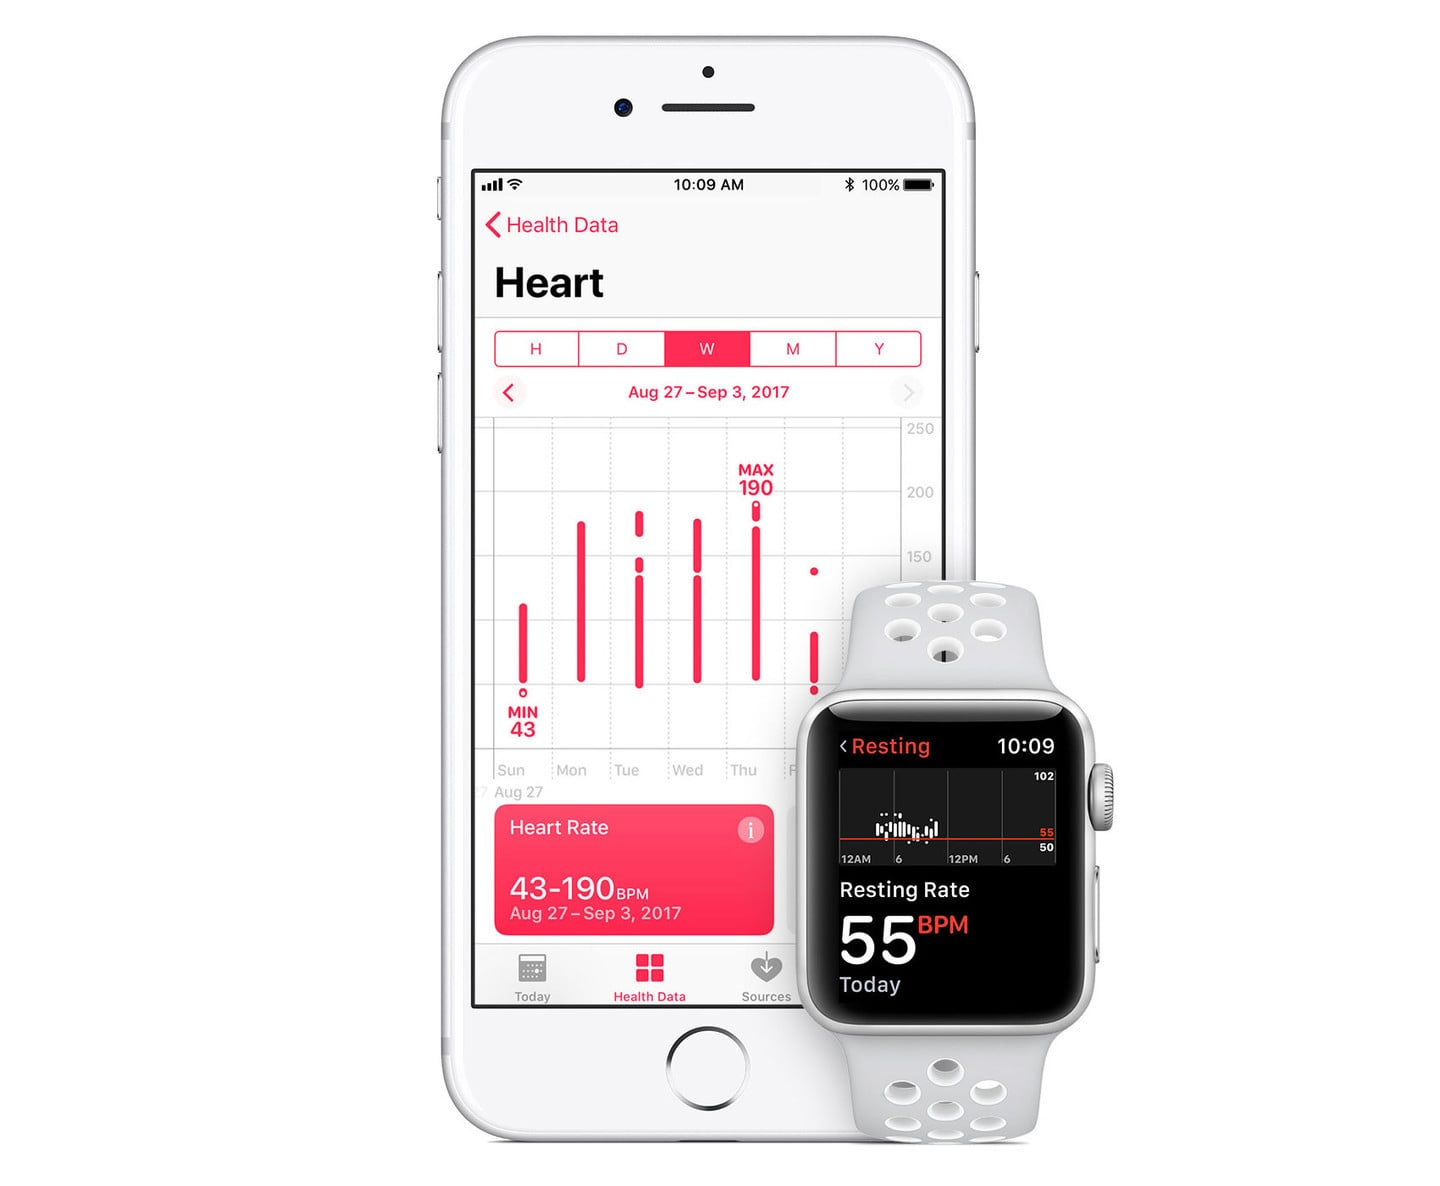 Elevated Heart Rate Alerts